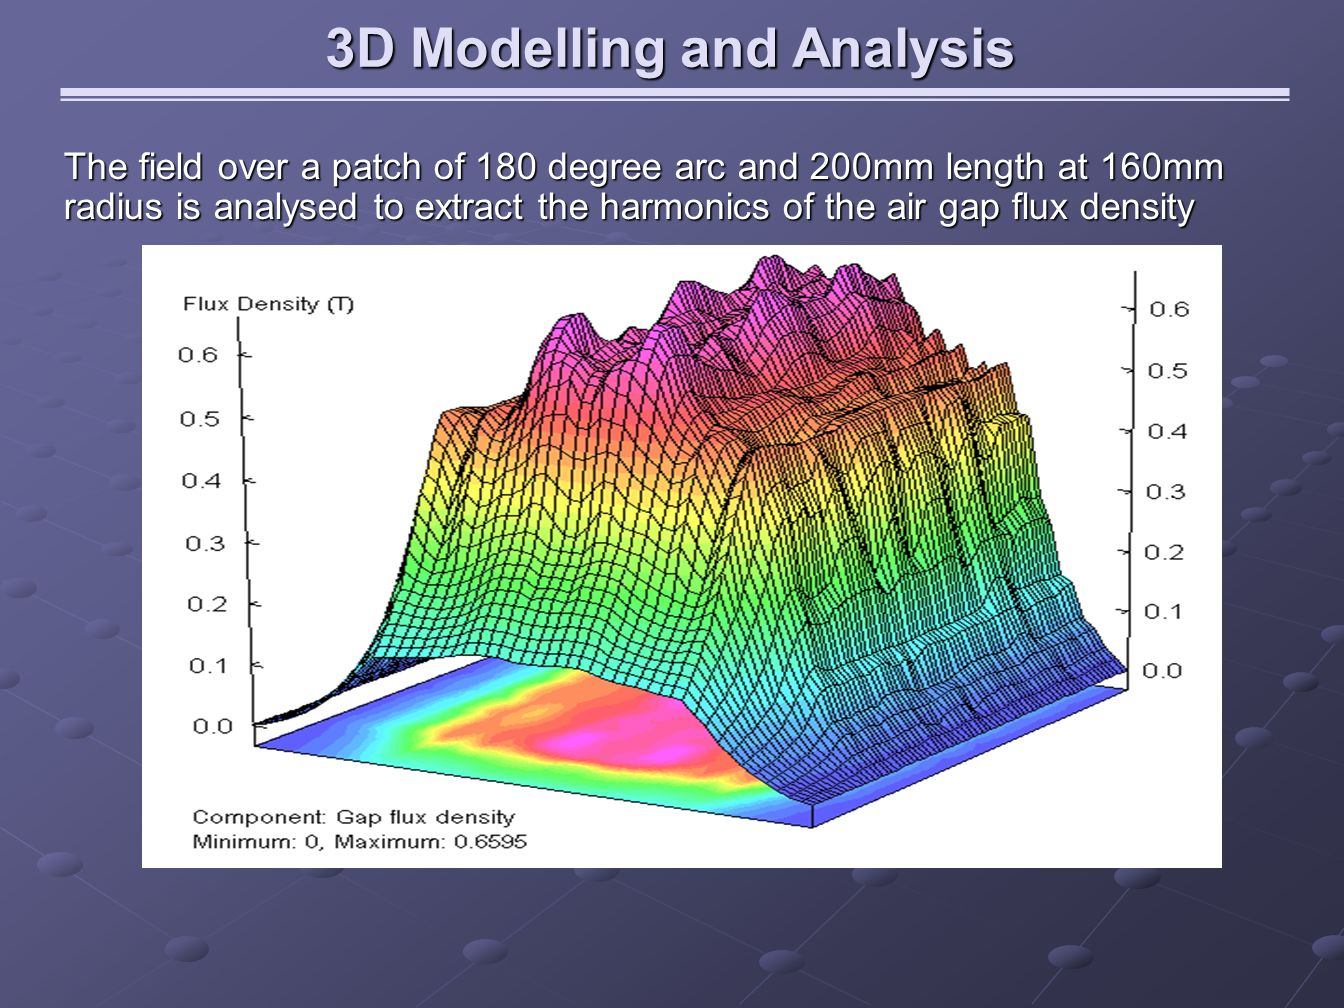 3D Modelling and Analysis